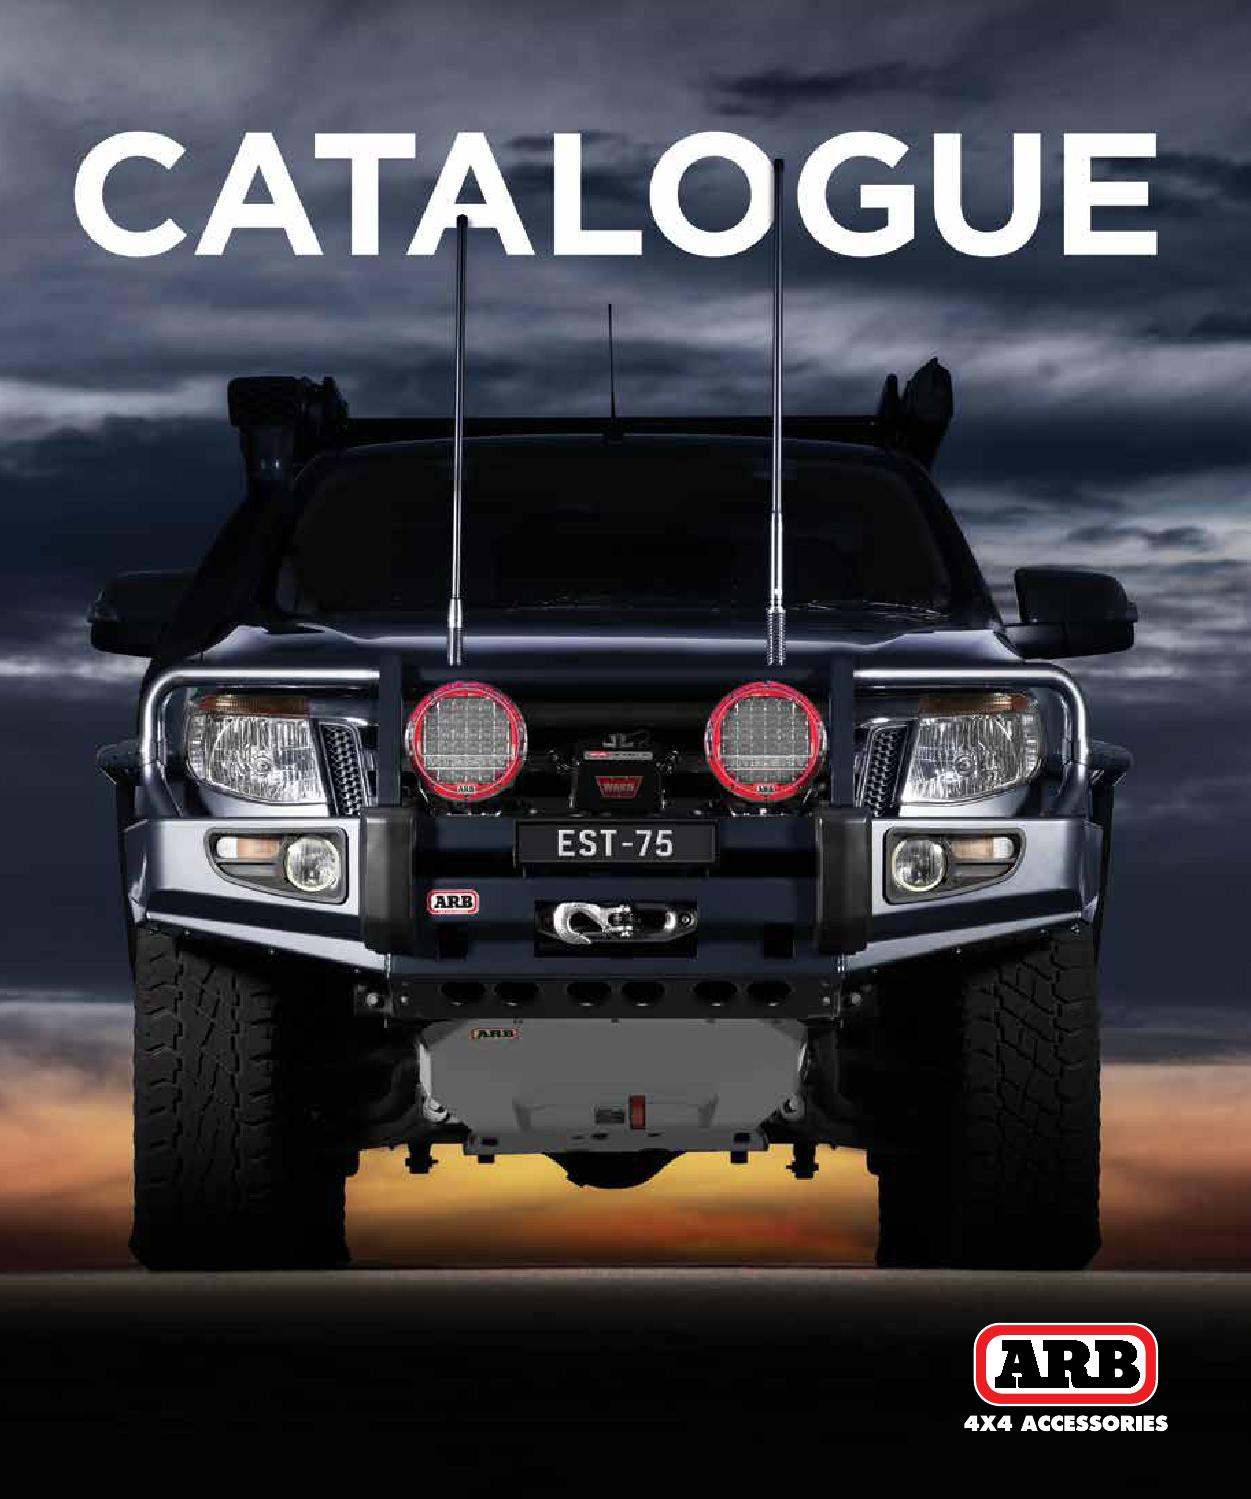 ARB Catalogue 2015 by ARB4x4 - issuu